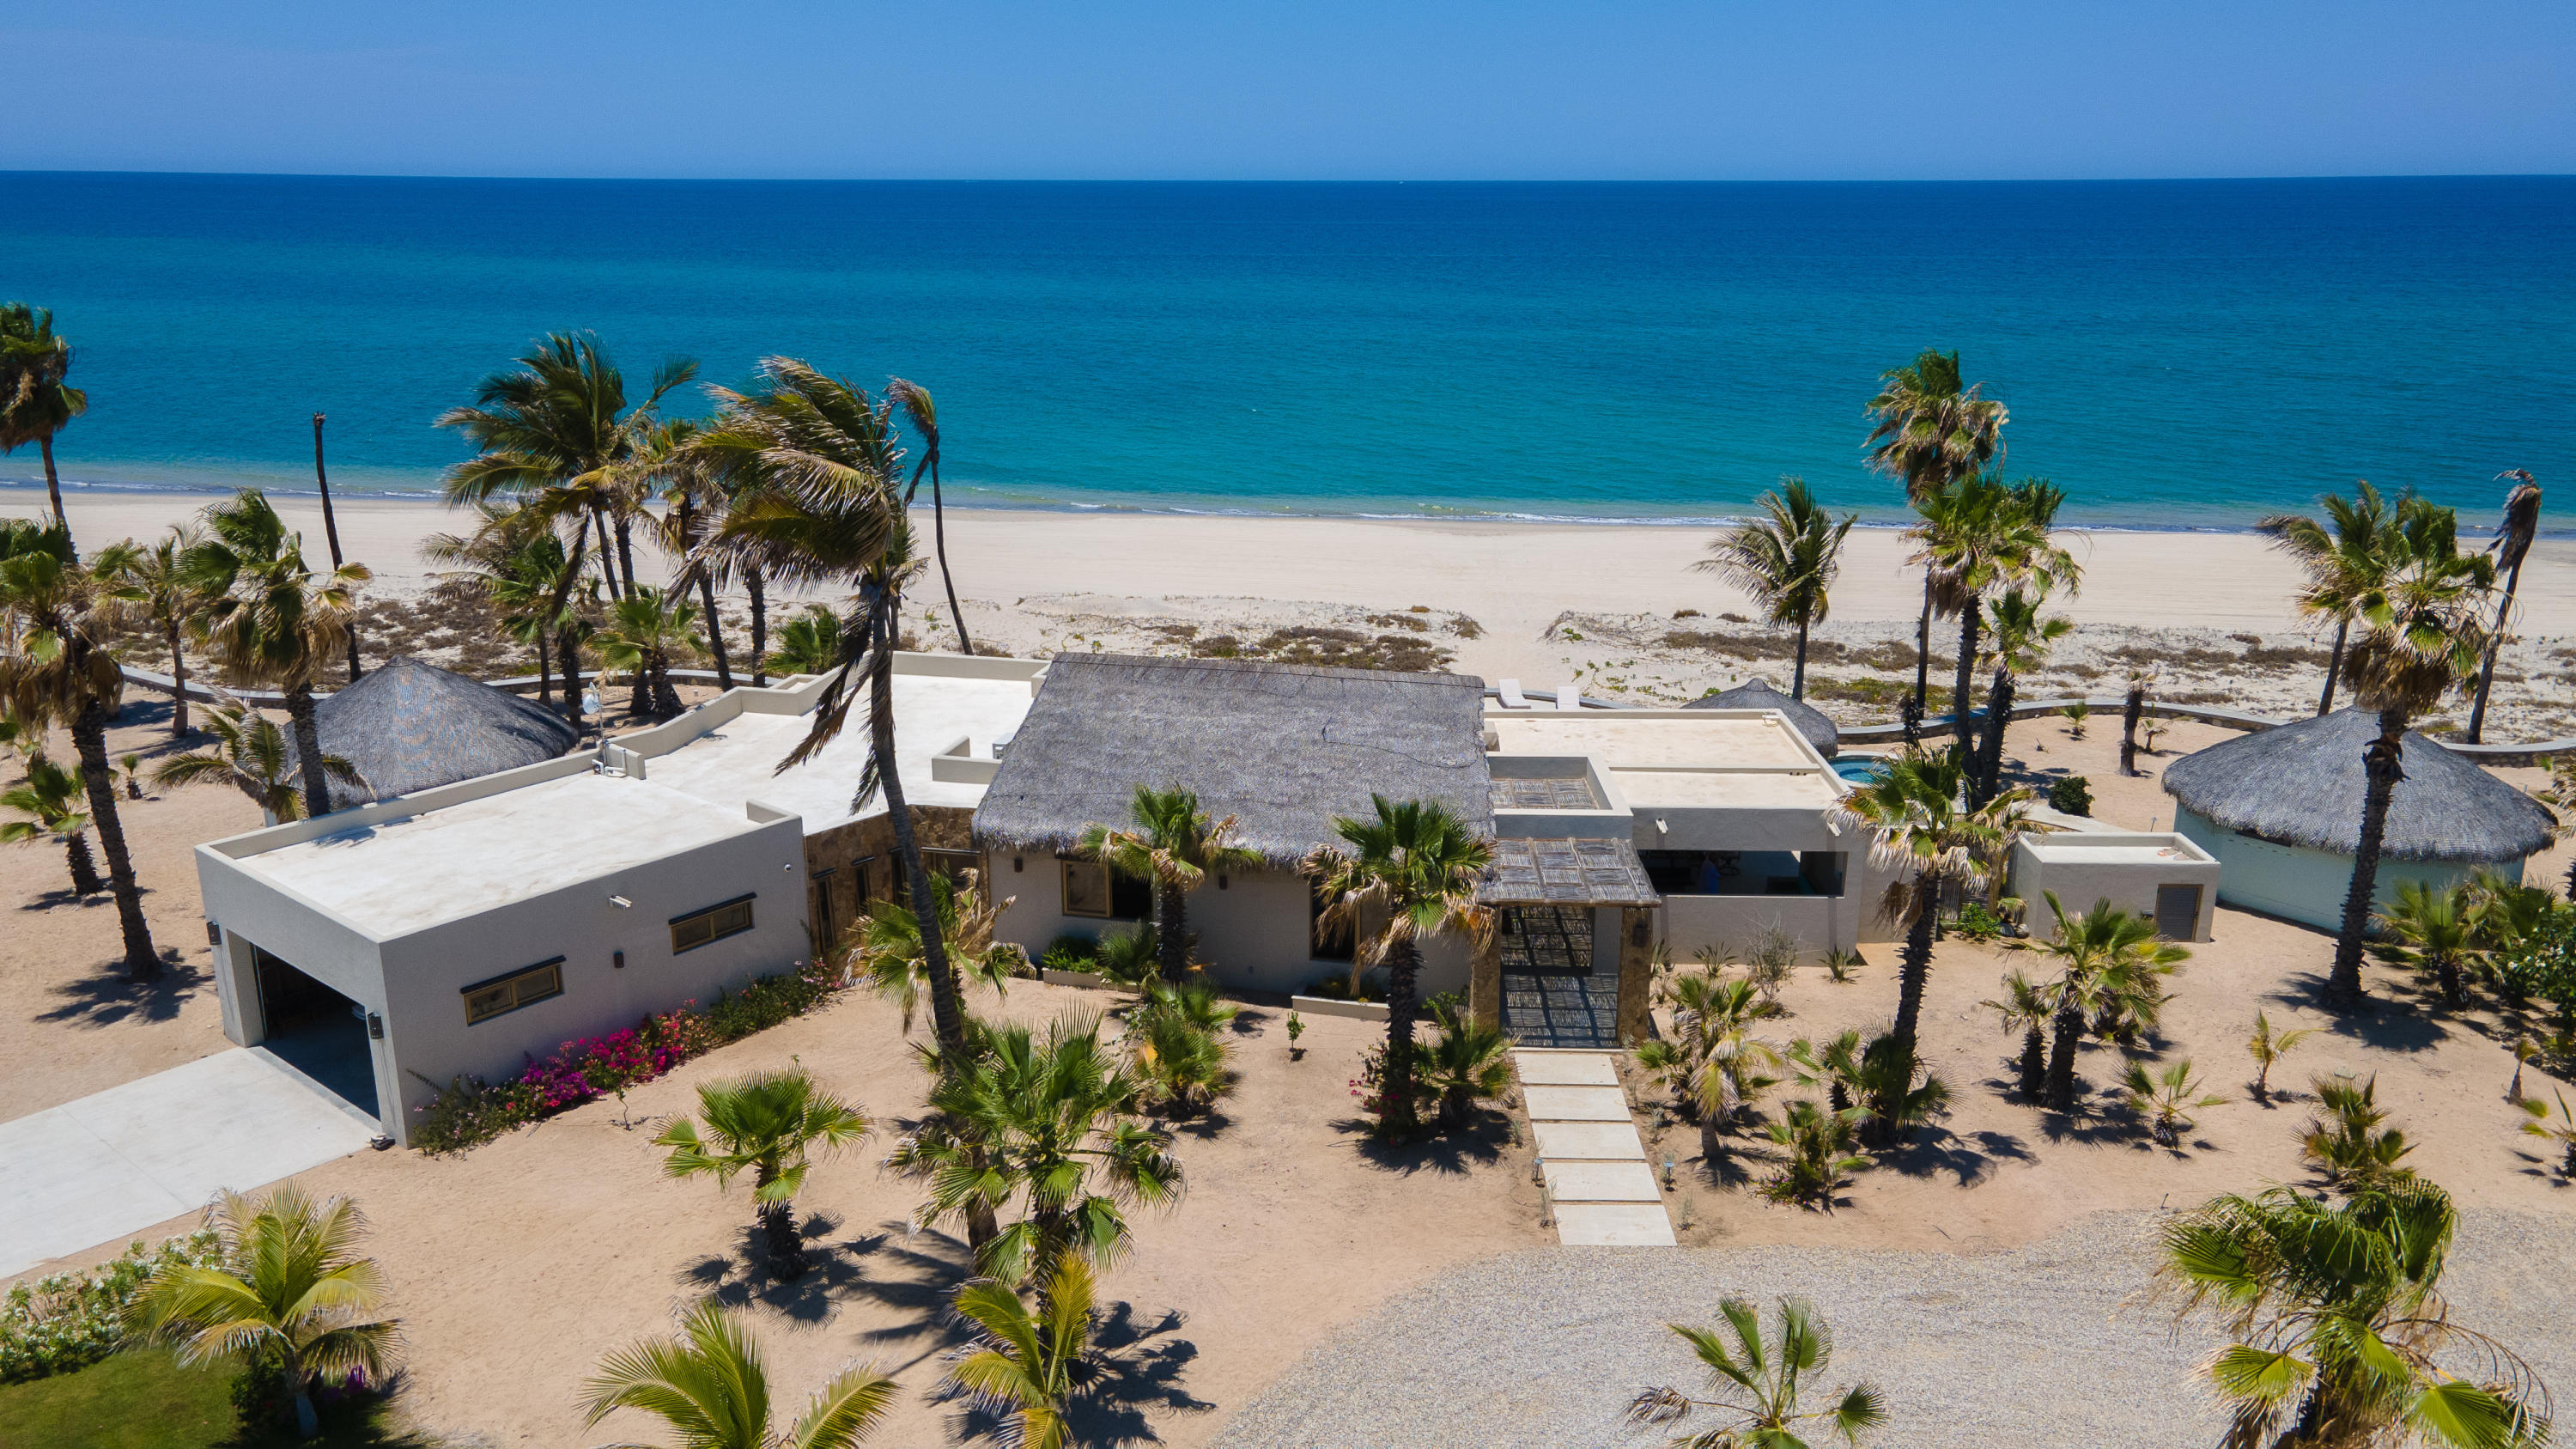 Beachfront Estate Property,  located in Playa Colorada with over two acres of land &100 meters of beach.   Casa de las Palmas is truly a ''one of a kind'' property which was remodeled in 2018 and featured in HGTV.  This estate has a main home with master en suite and the bunk room for your family or guests.Two more bedrooms and baths are located in the two casitas, located near the main house with views of the Sea.  And at the back of the property is a 1 bedroom casita with storage and full kitchen, which is currently occupied by the managers of the property.  This location  is great for families and corporate getaways and offers great attention to detail:  from the beach glass backsplash, pendant lites in the master suite, the swim-up bar in the pool, to the state of the art sound system heard throughout the home and pool area,  water filtration equipment, custom made doors and cabinets.    The great room area is the perfect place for entertaining,  and opens to the covered porch, pool, and hot tub area.  Watch the whales, gaze at the stars, or enjoy the breeze from the Sea.  Casa de la Palmas is a great place to unwind!   Want to hear or see more?  Contact us for a tour!  Coming soon: Virtual Tour of the property.